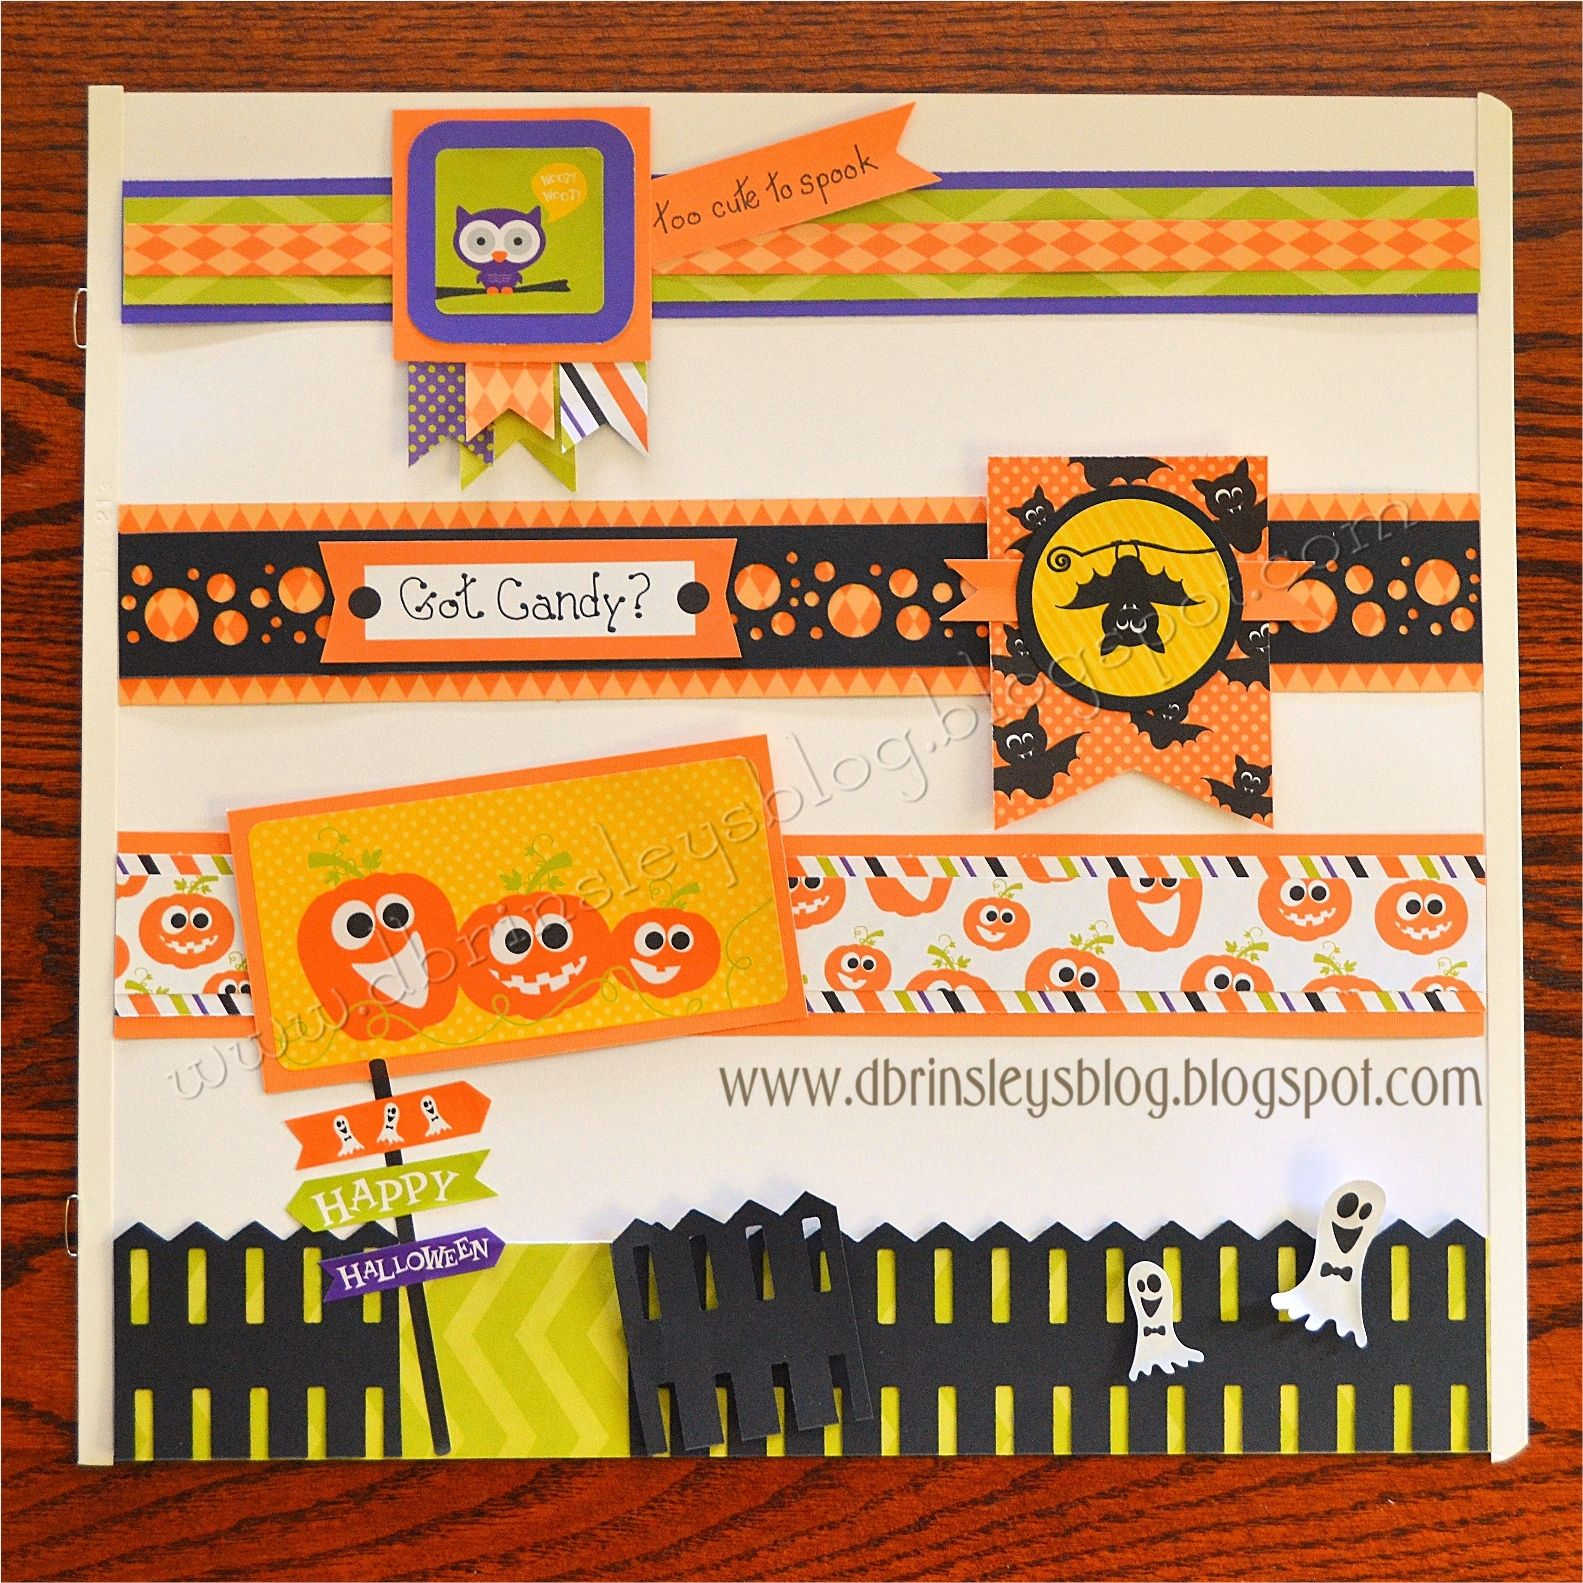 LOVE these Halloween borders by Diana Brinsley! #CreativeMemories ...